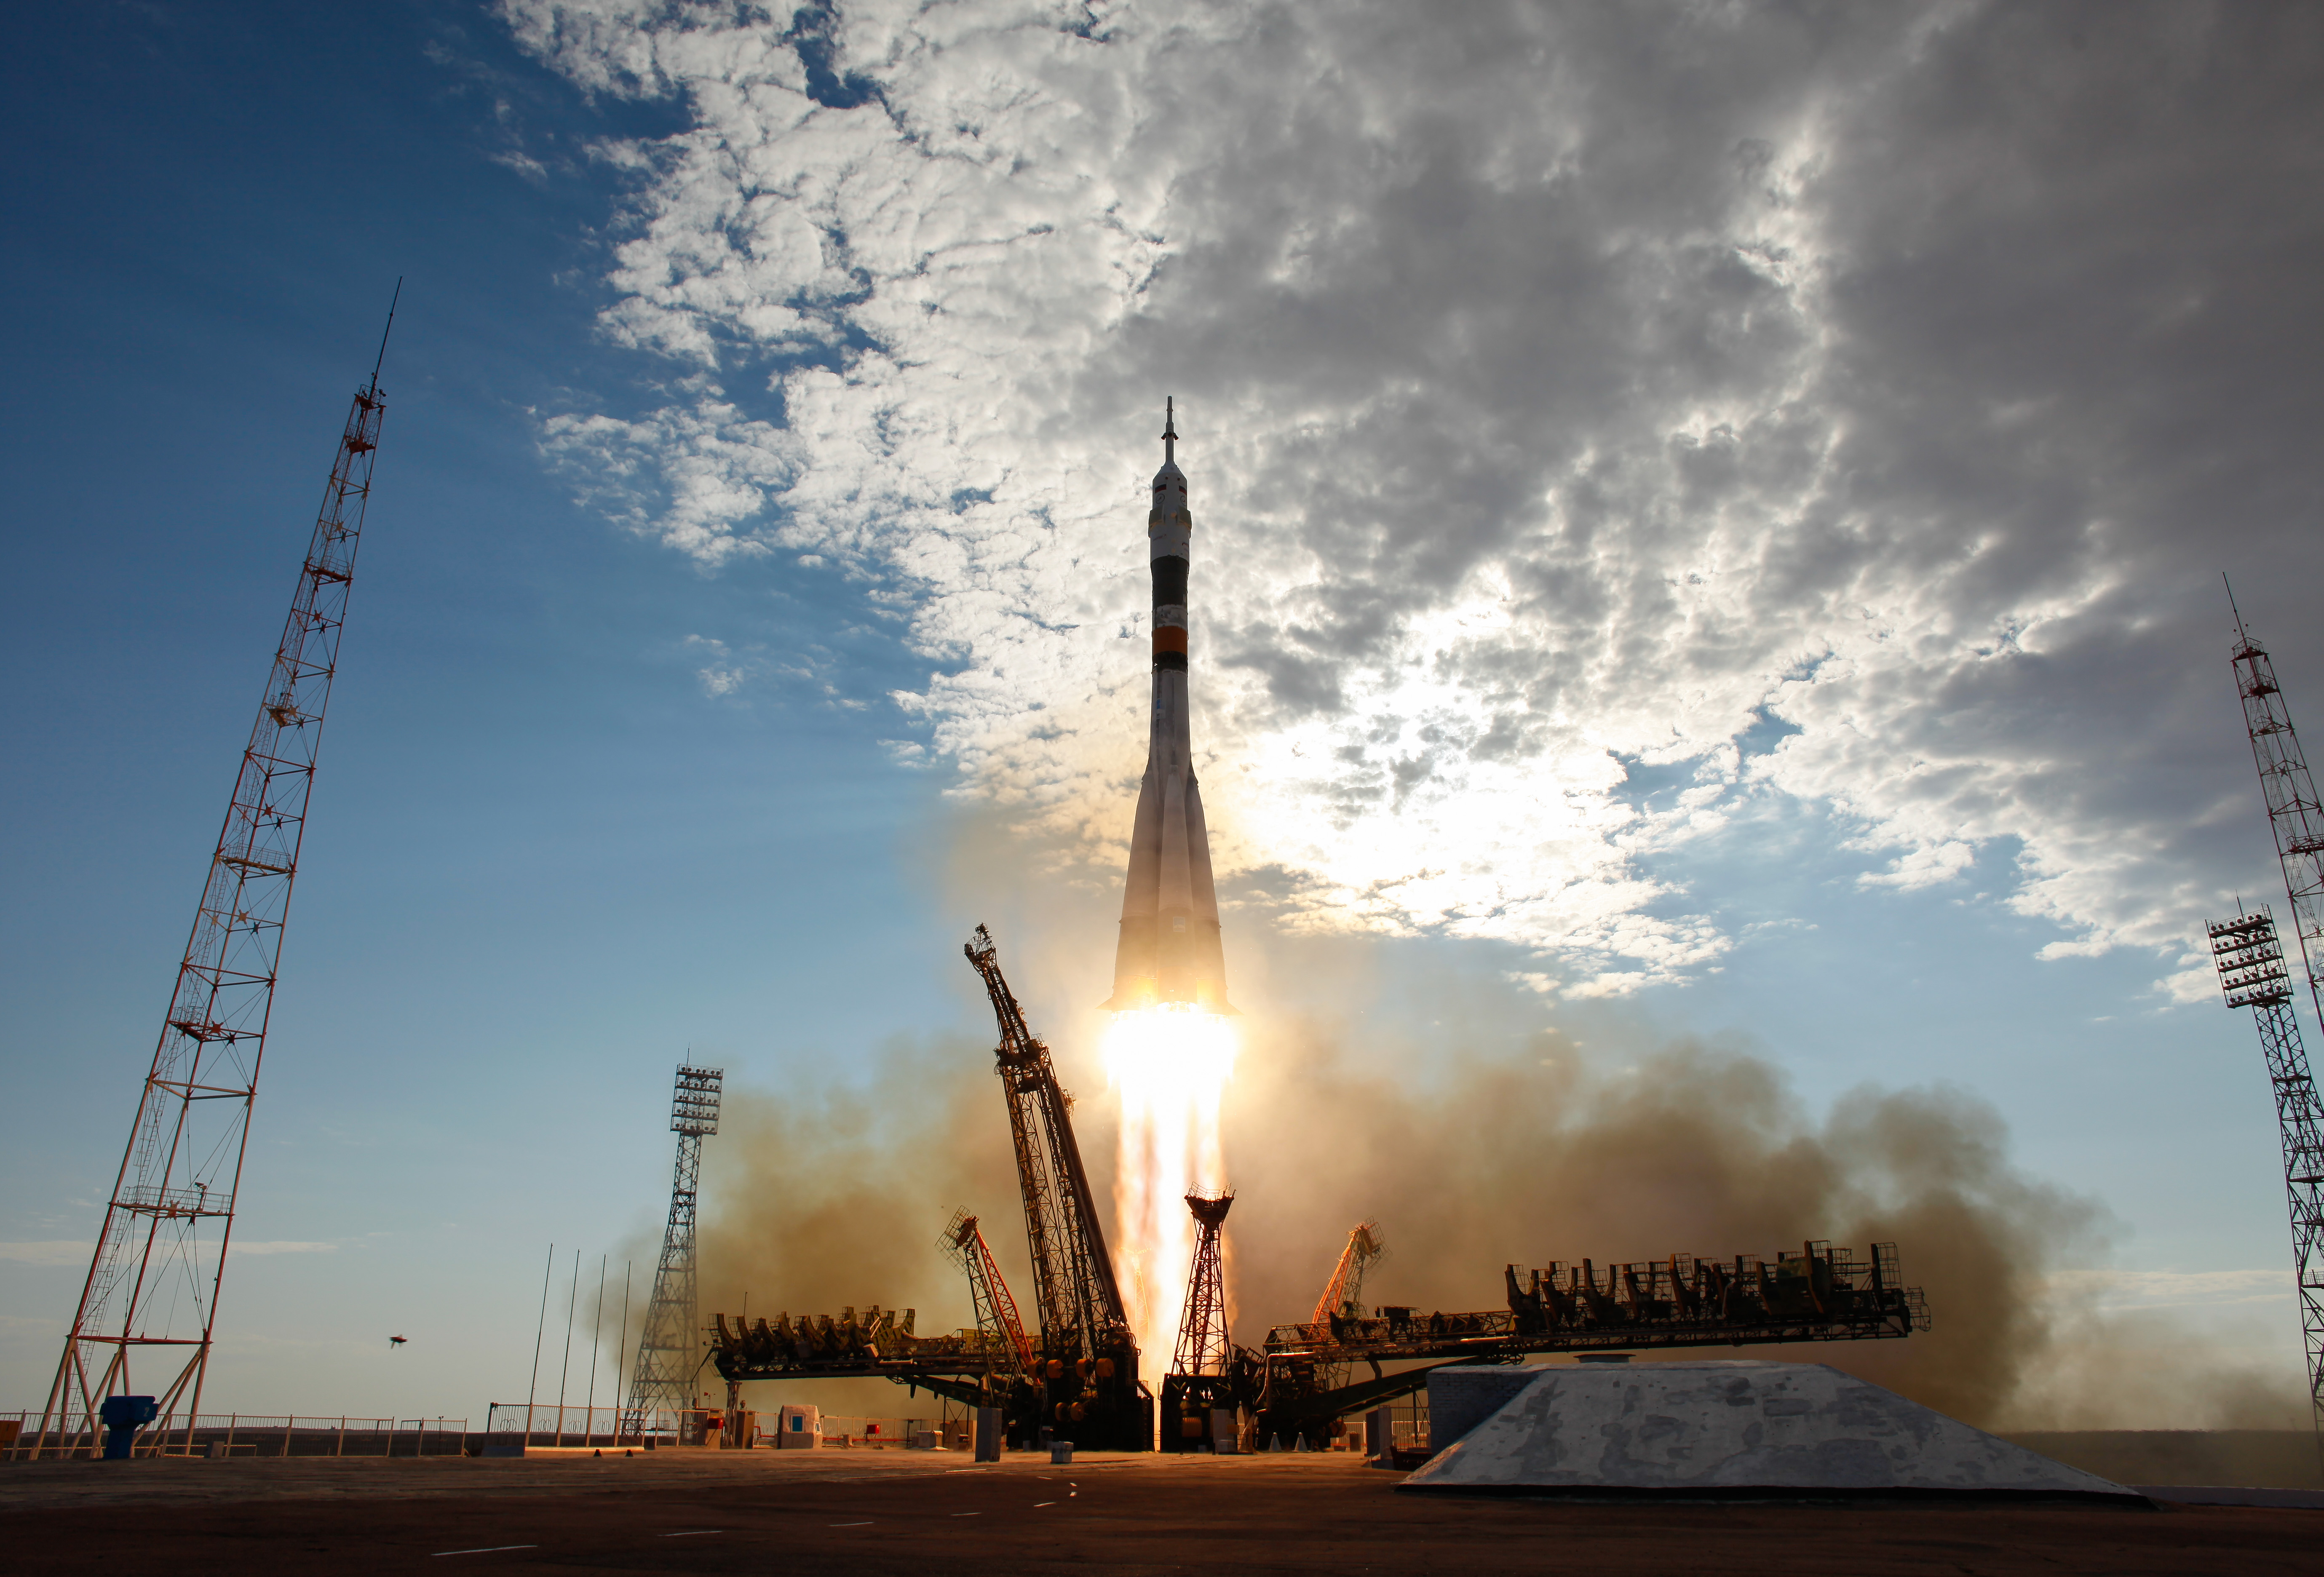 http://upload.wikimedia.org/wikipedia/commons/e/e6/Soyuz_TMA-05M_rocket_launches_from_Baikonur_4.jpg